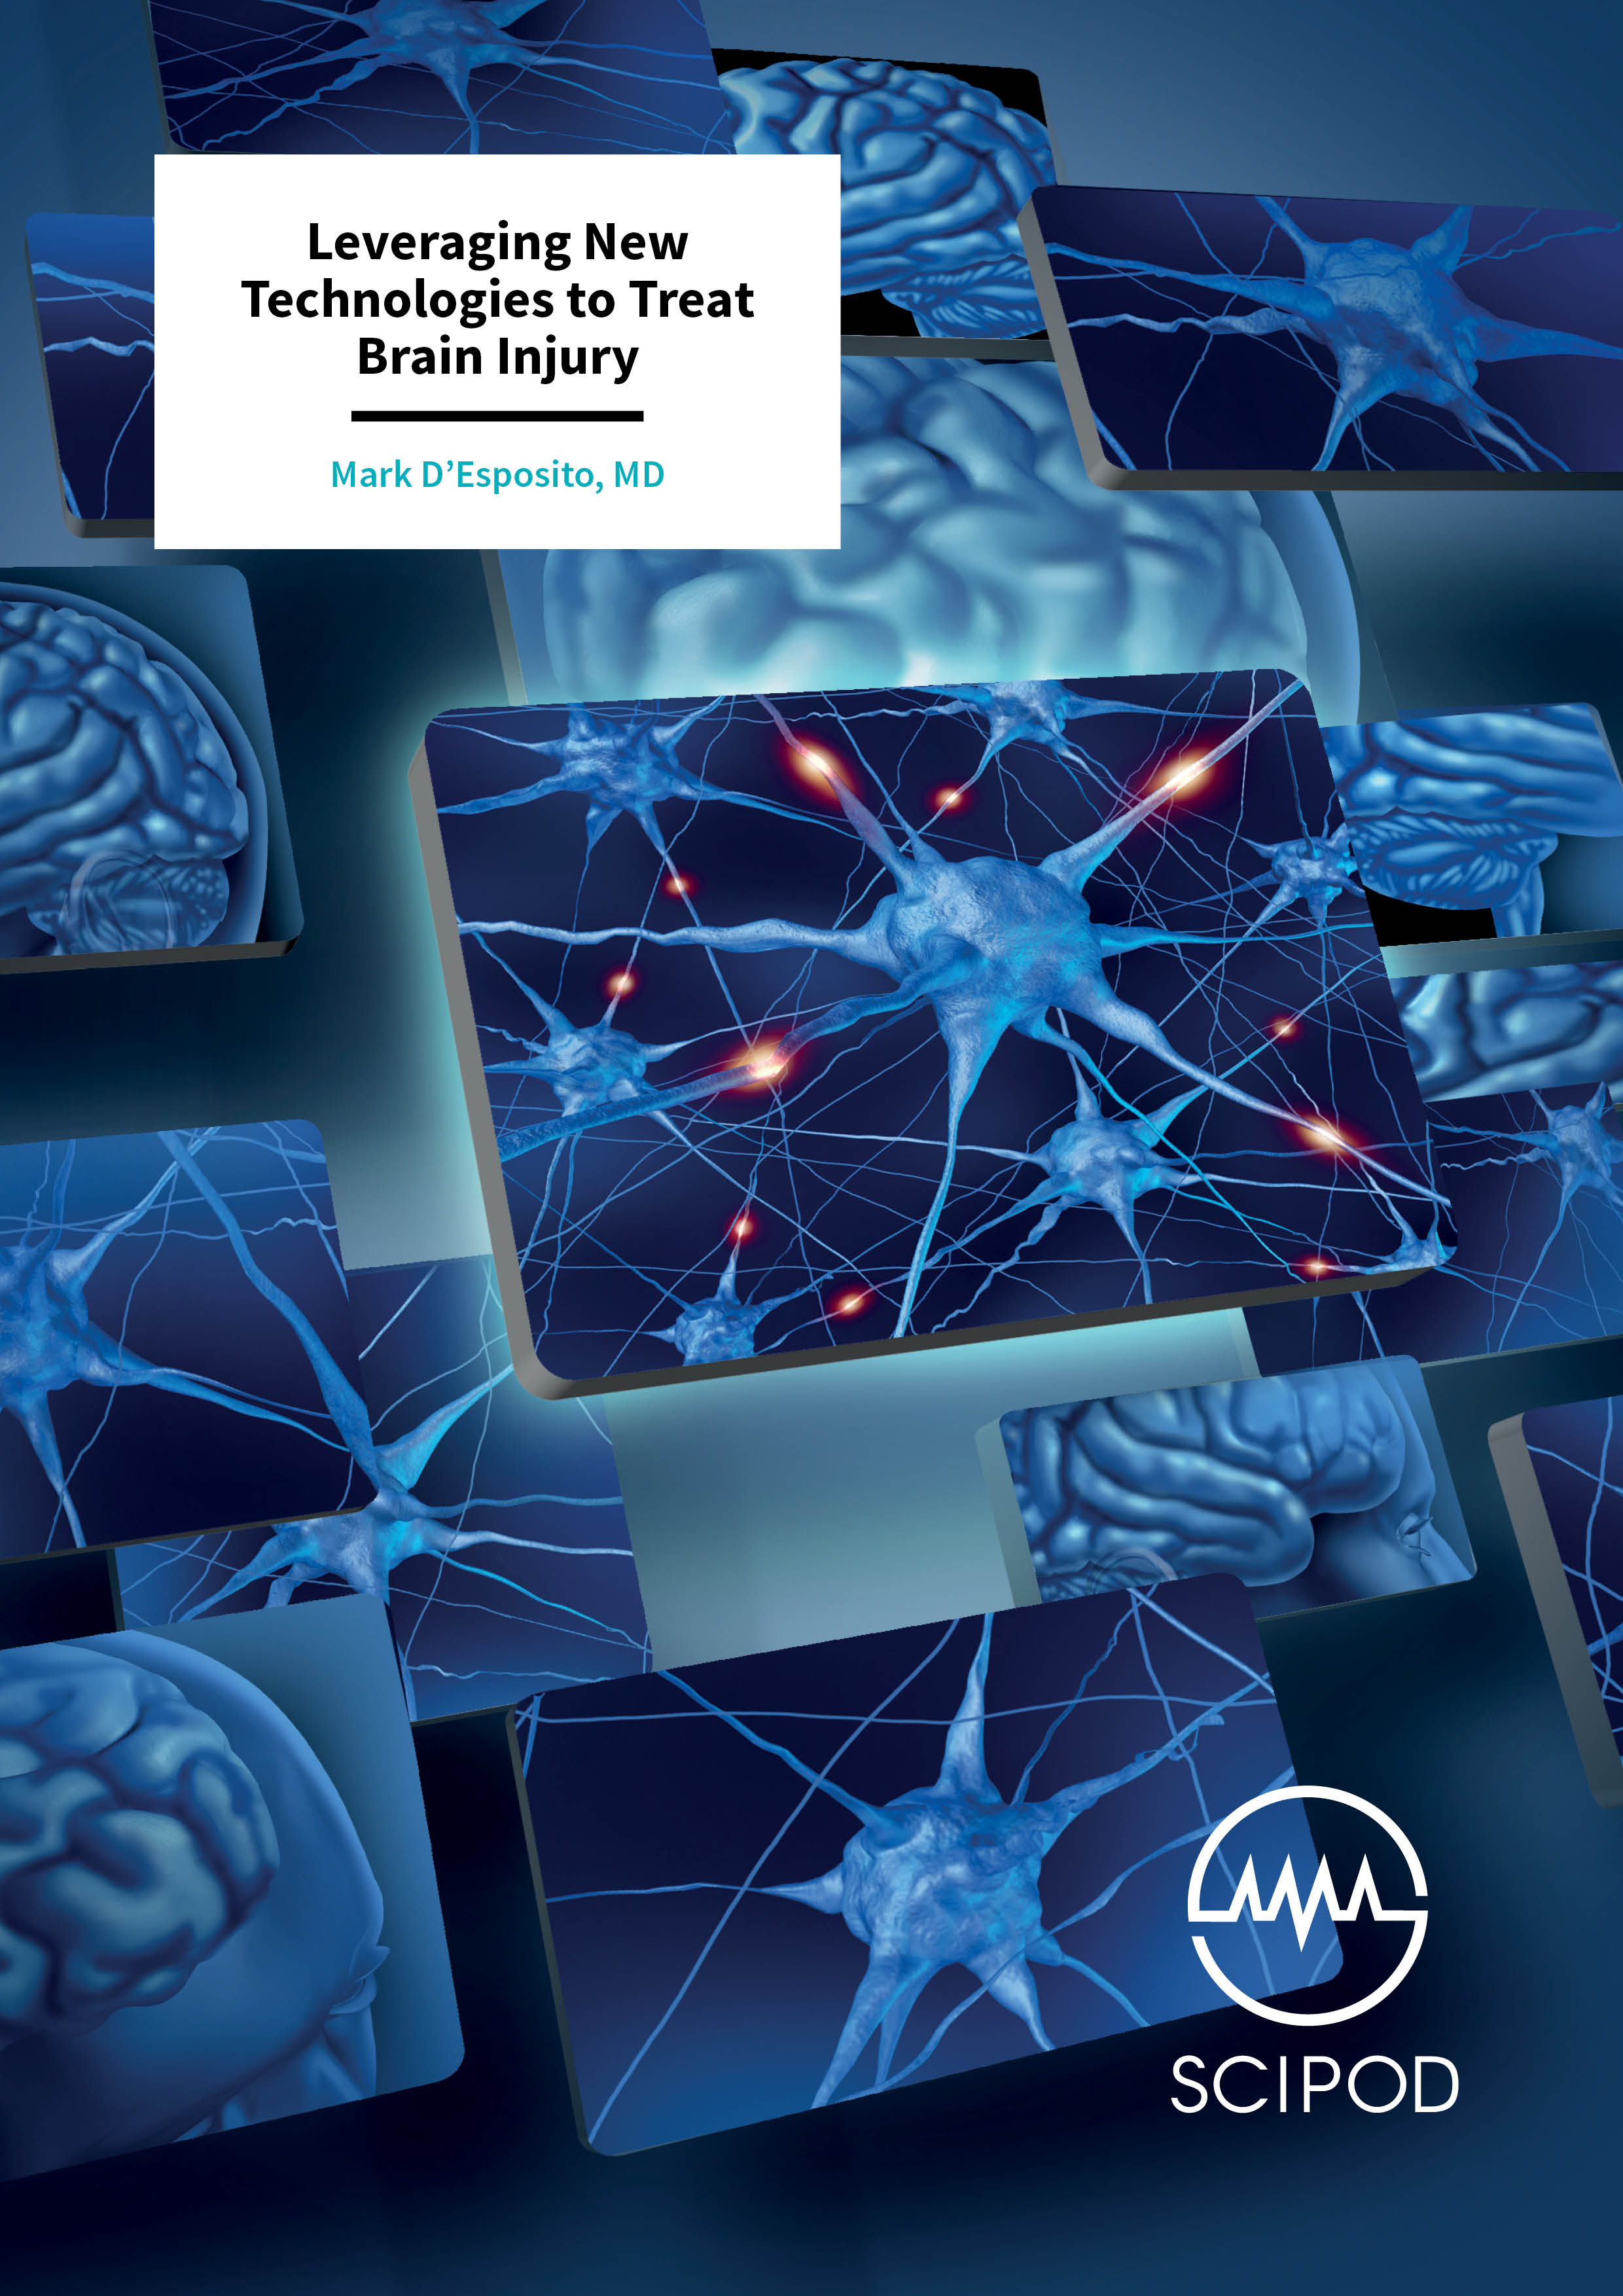 Leveraging New Technologies to Treat  Brain Injury – Mark D'Esposito, MD, University of California, Berkeley